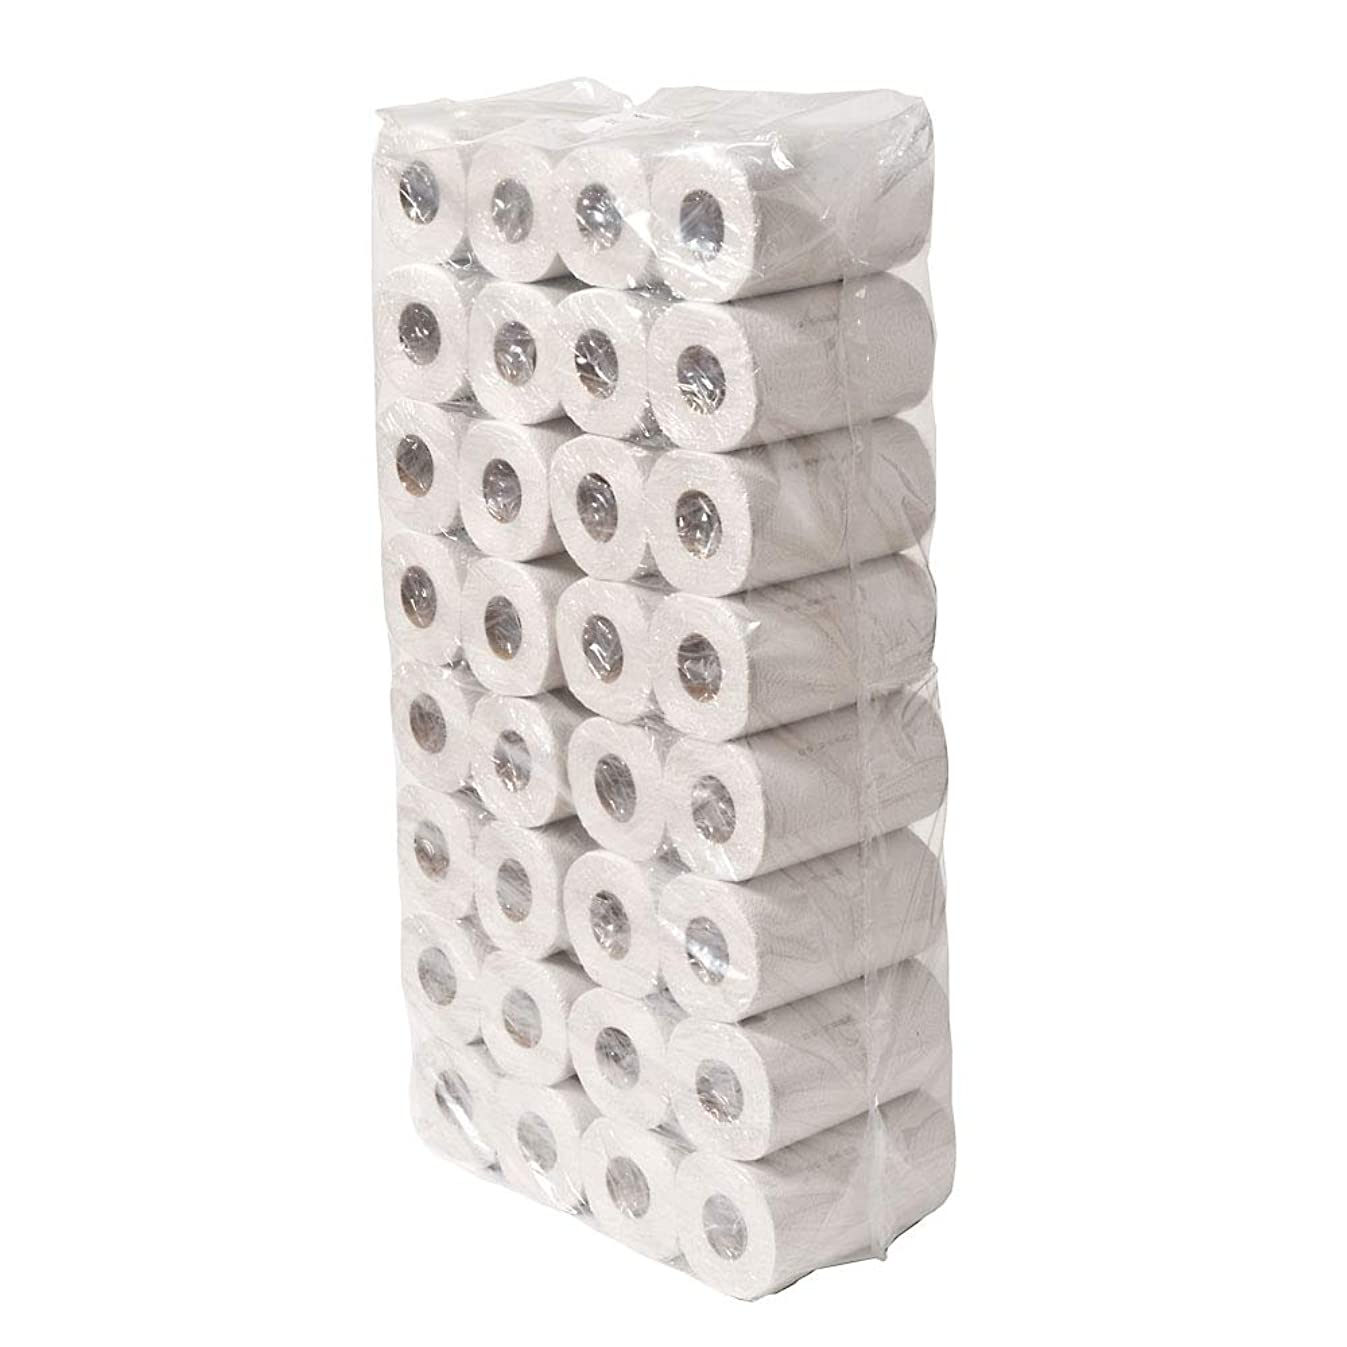 DJGroup Toilet Paper Rolls White Recycled 2-Ply 200 Sheets 64 Small Rolls (16 x 4)